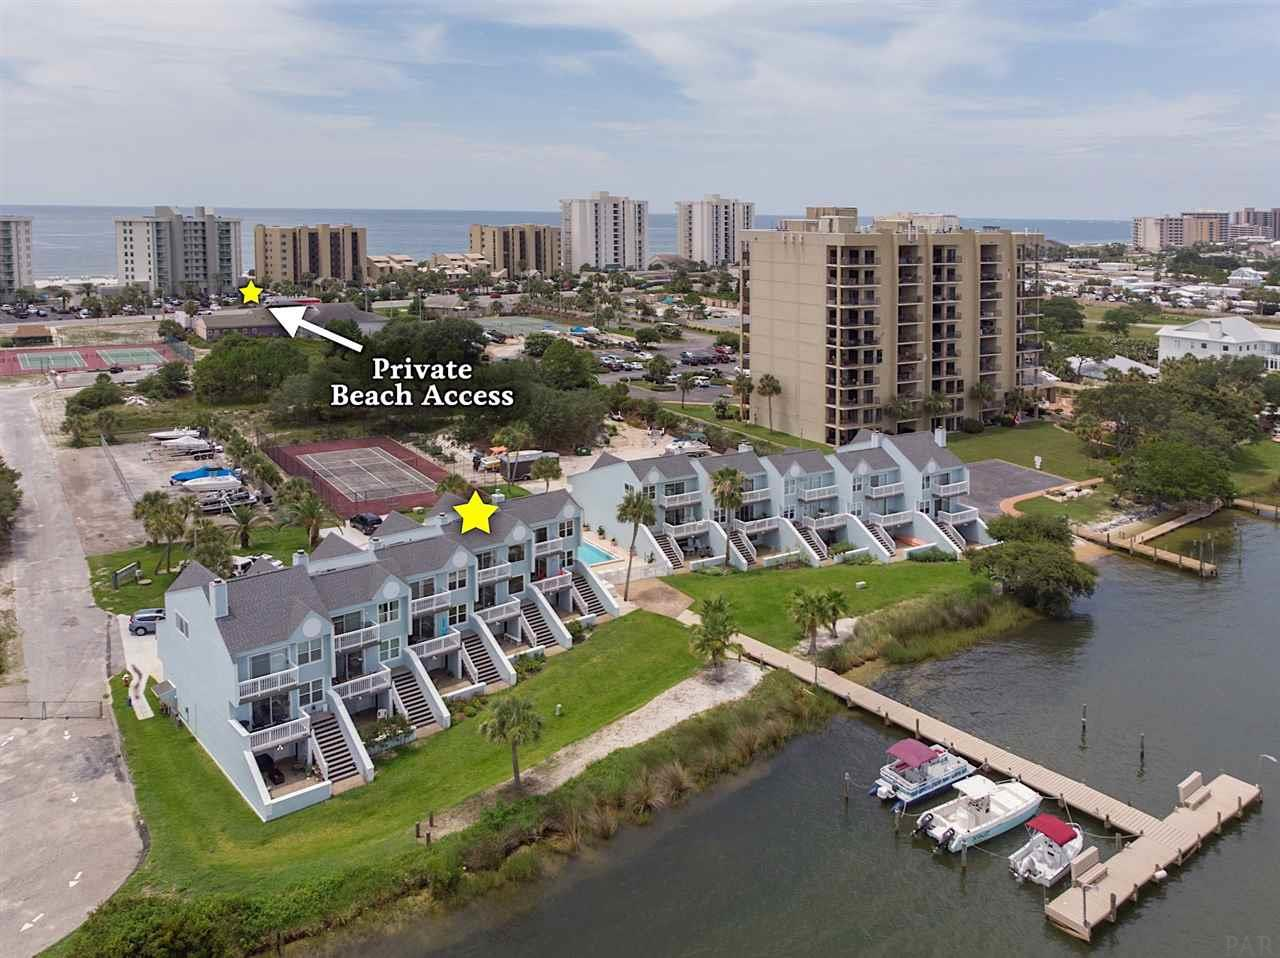 16784 PERDIDO KEY DR, Perdido Key Condo for Sale